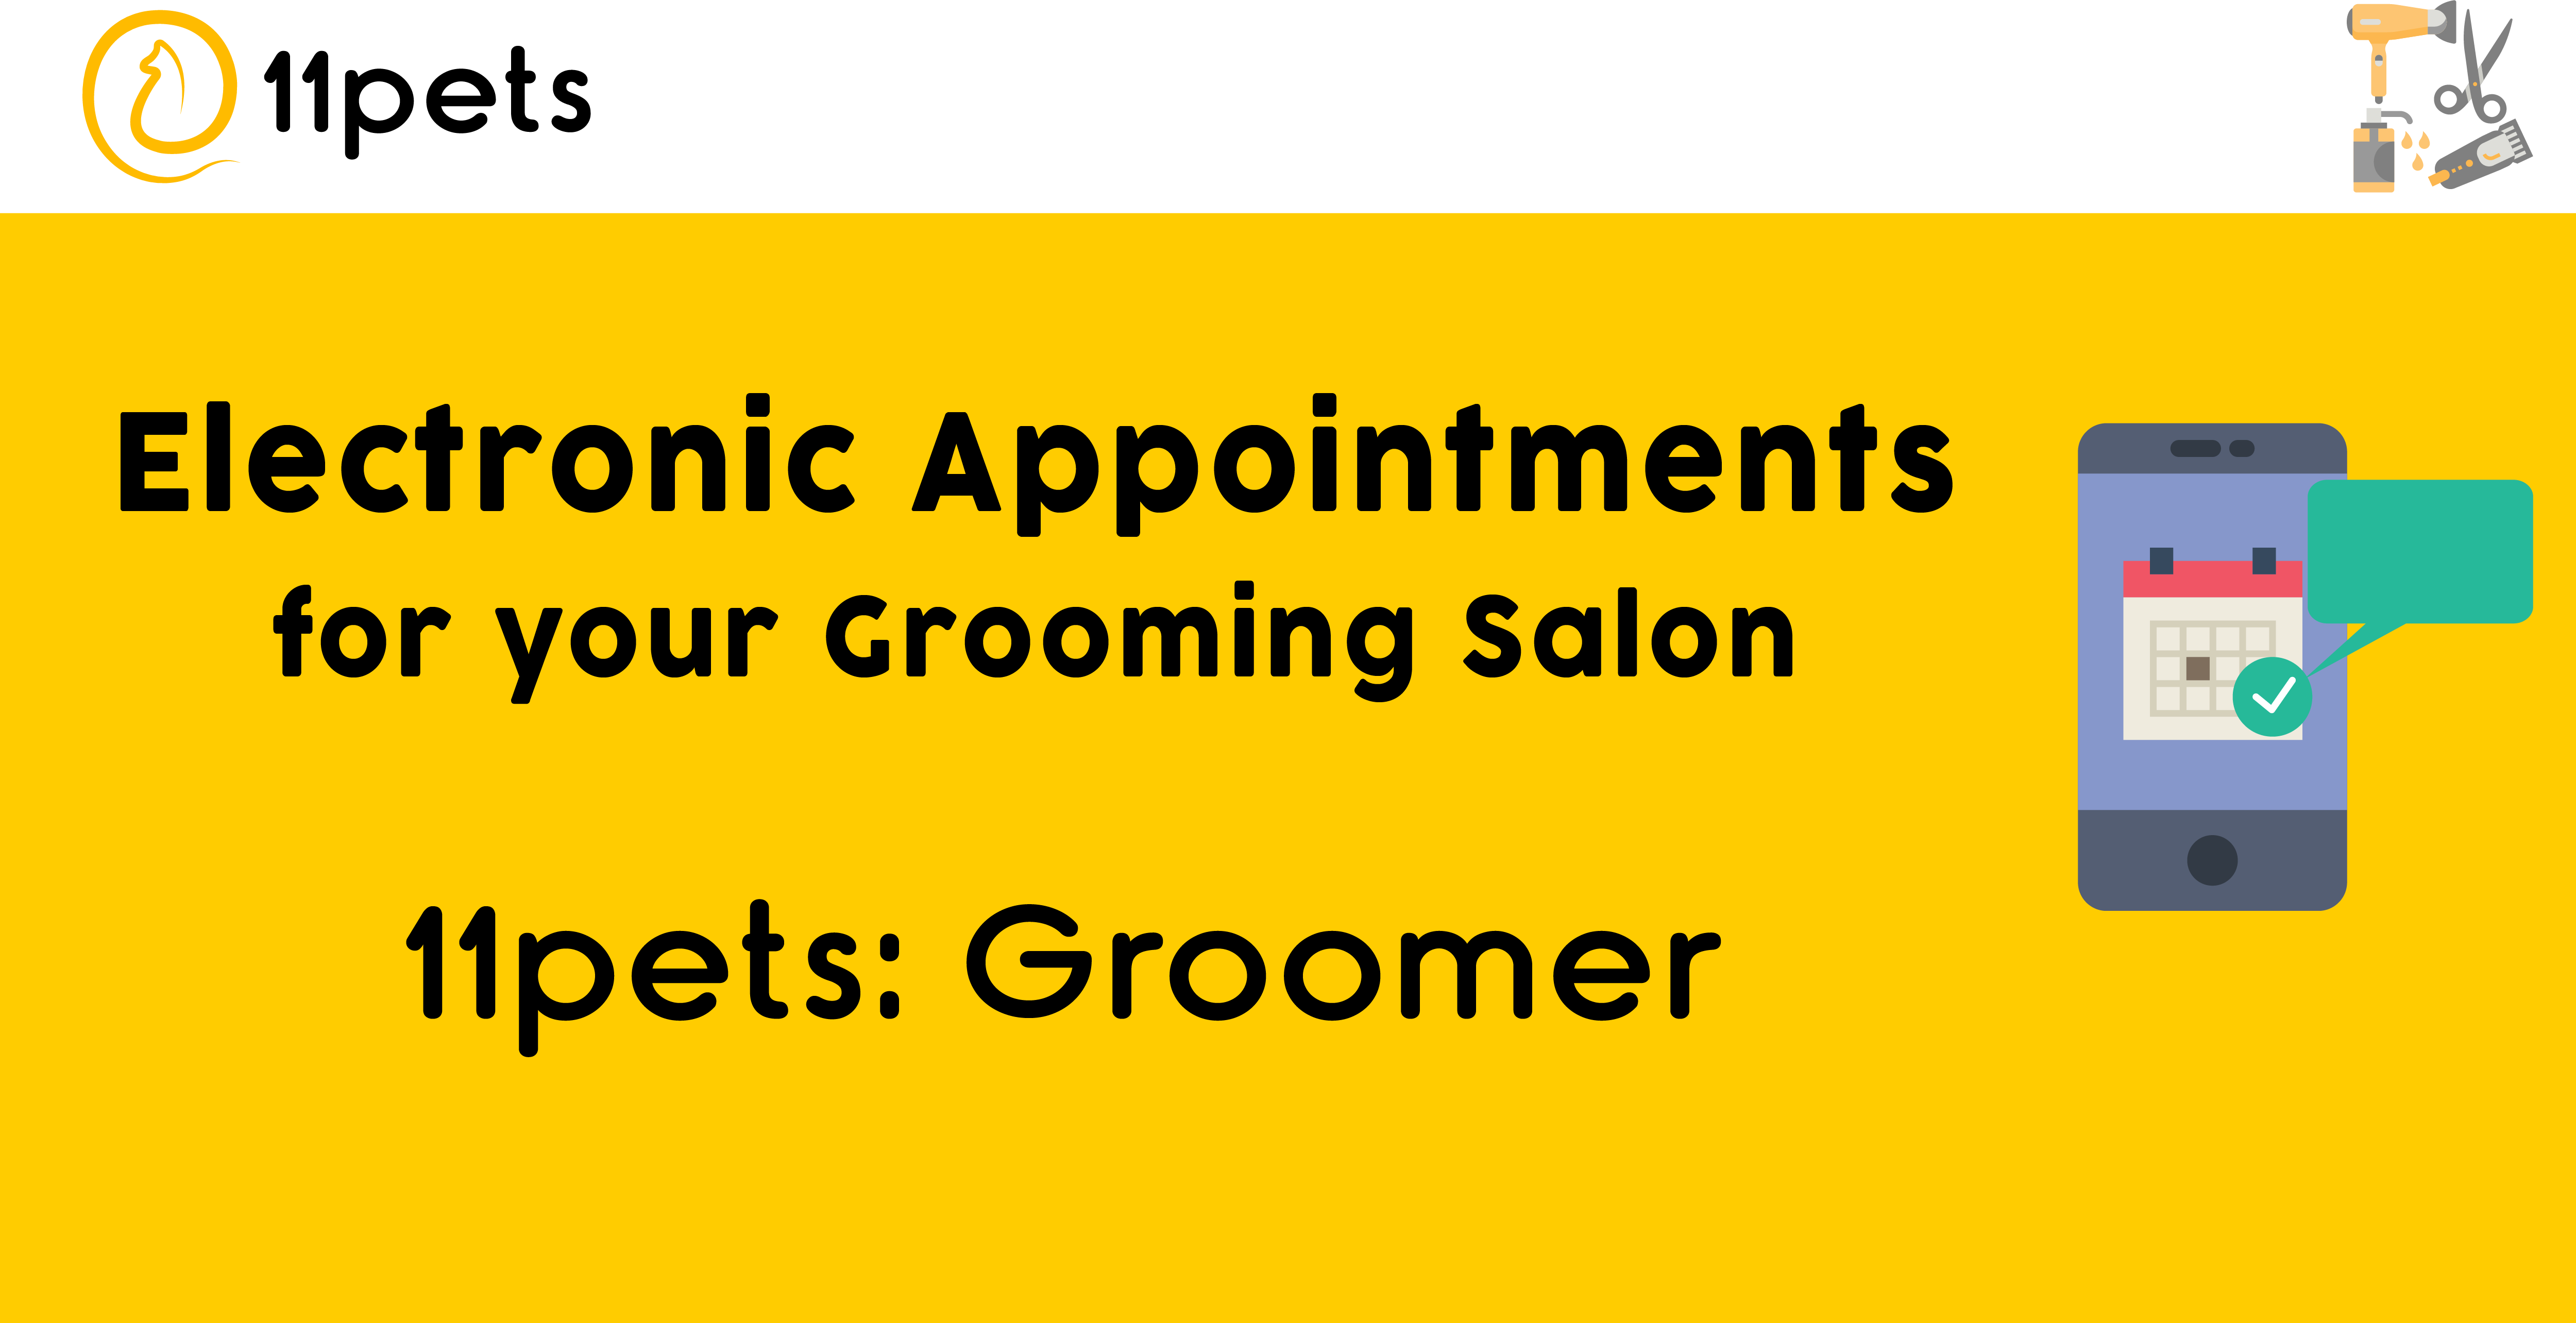 Electronic Appointments for your grooming salon